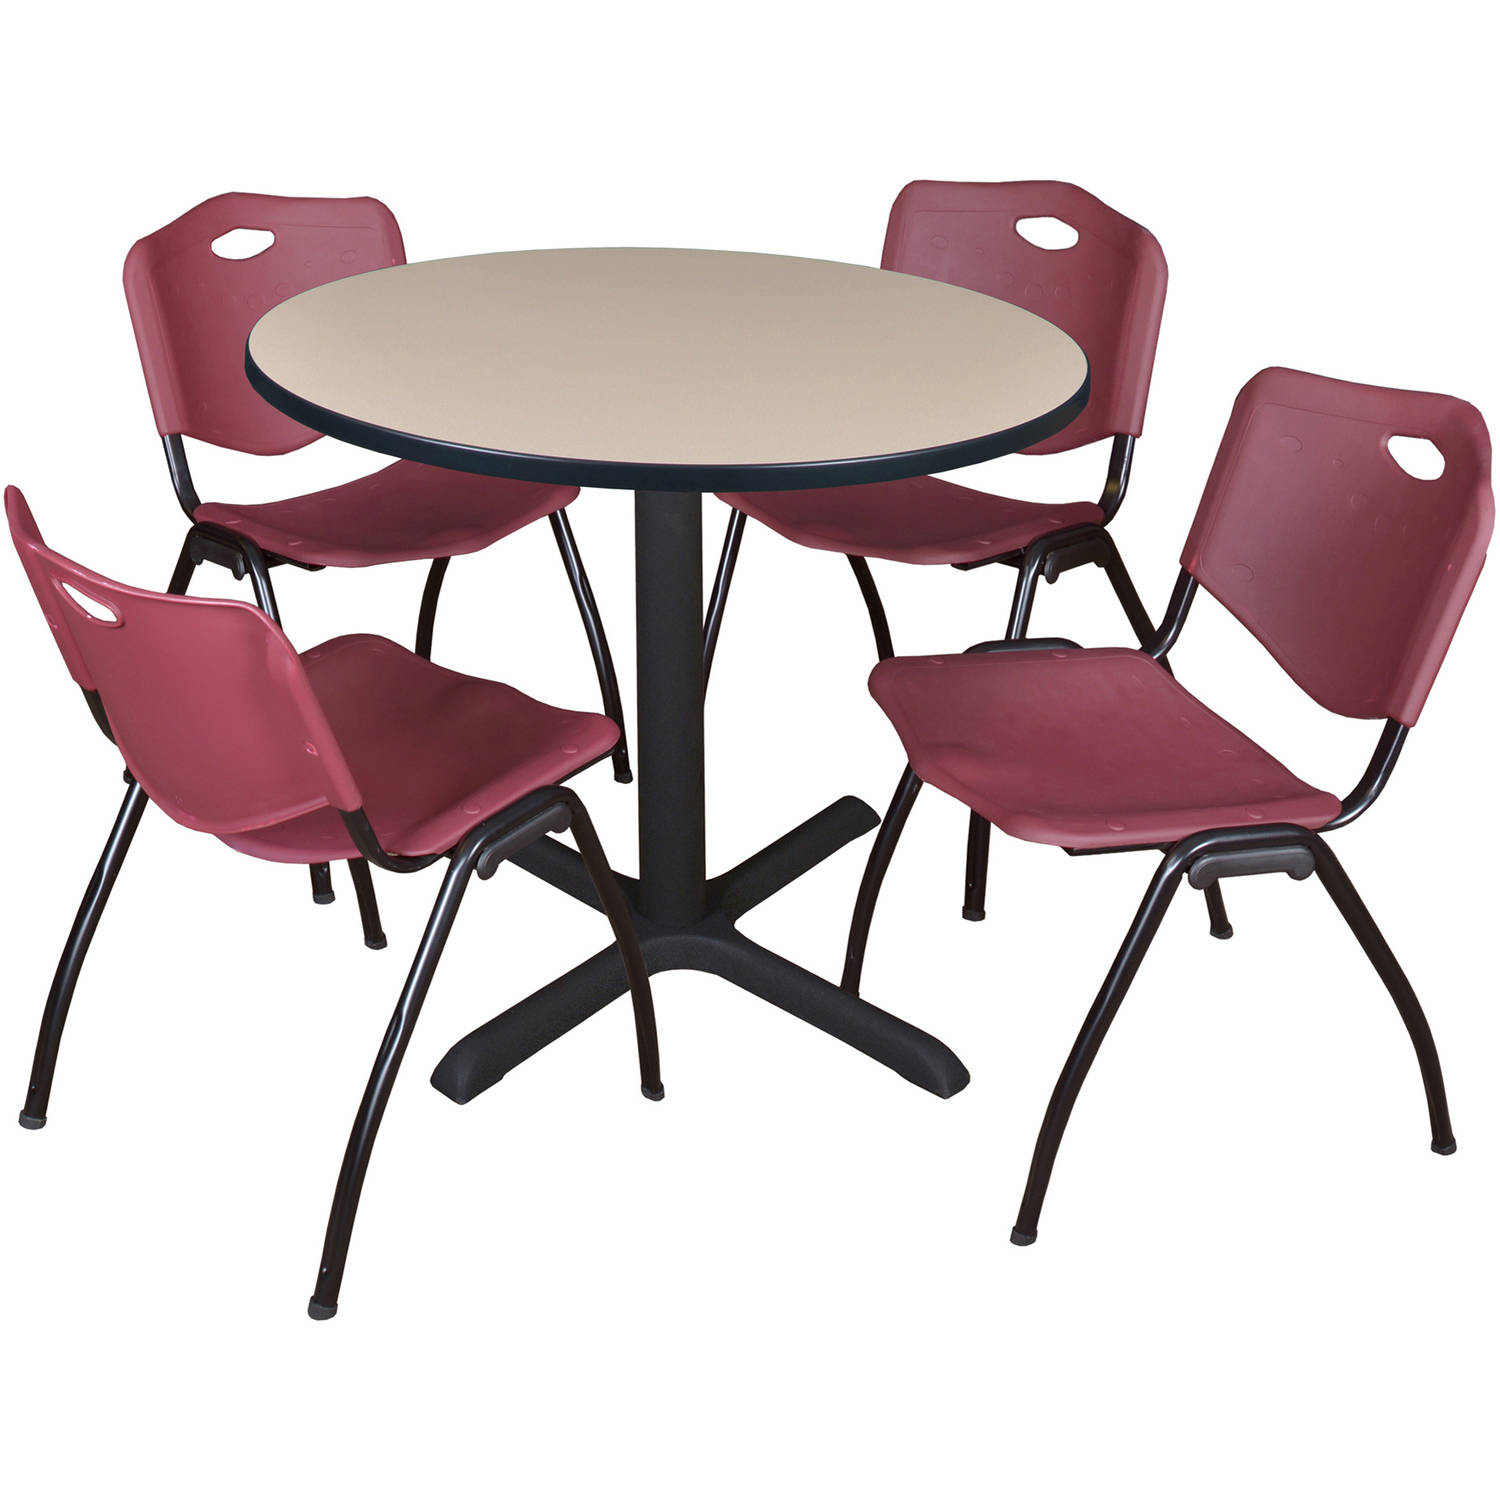 "Cain 36"" Beige Round Breakroom Table and 4 'M' Stack Chairs, Multiple Colors"